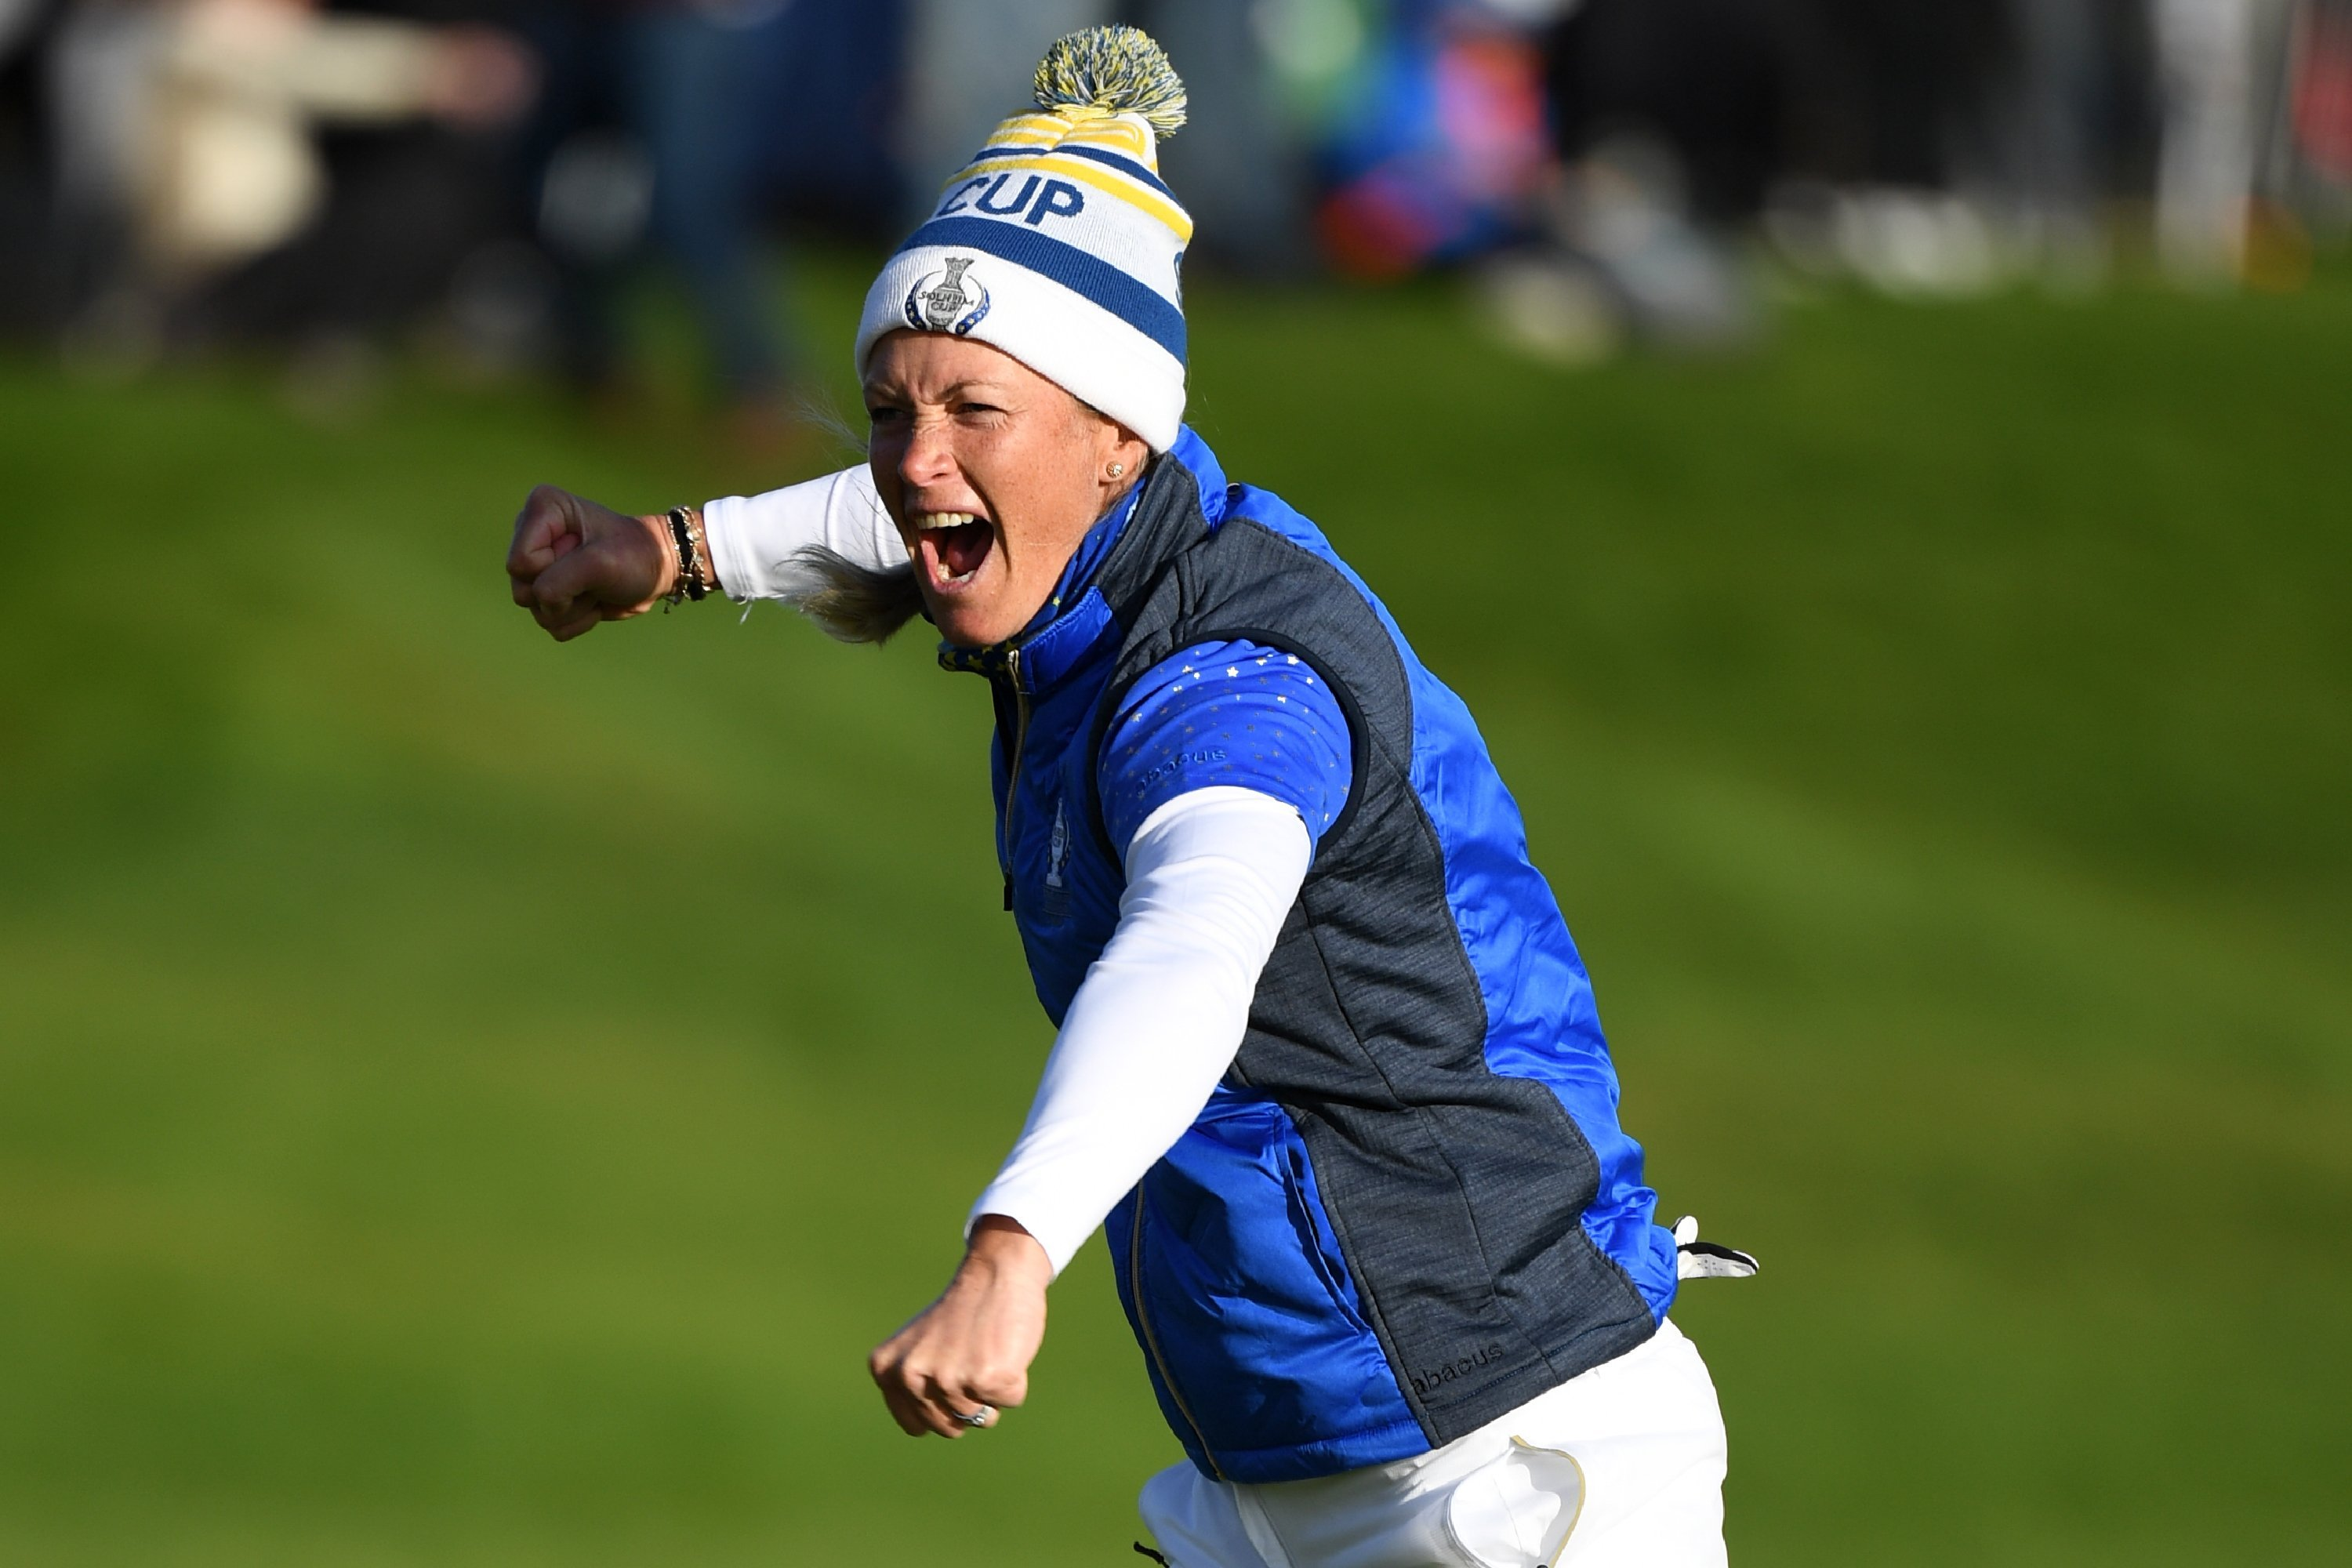 Solheim Cup: Europe defeats USA in thrilling finish at Gleneagles